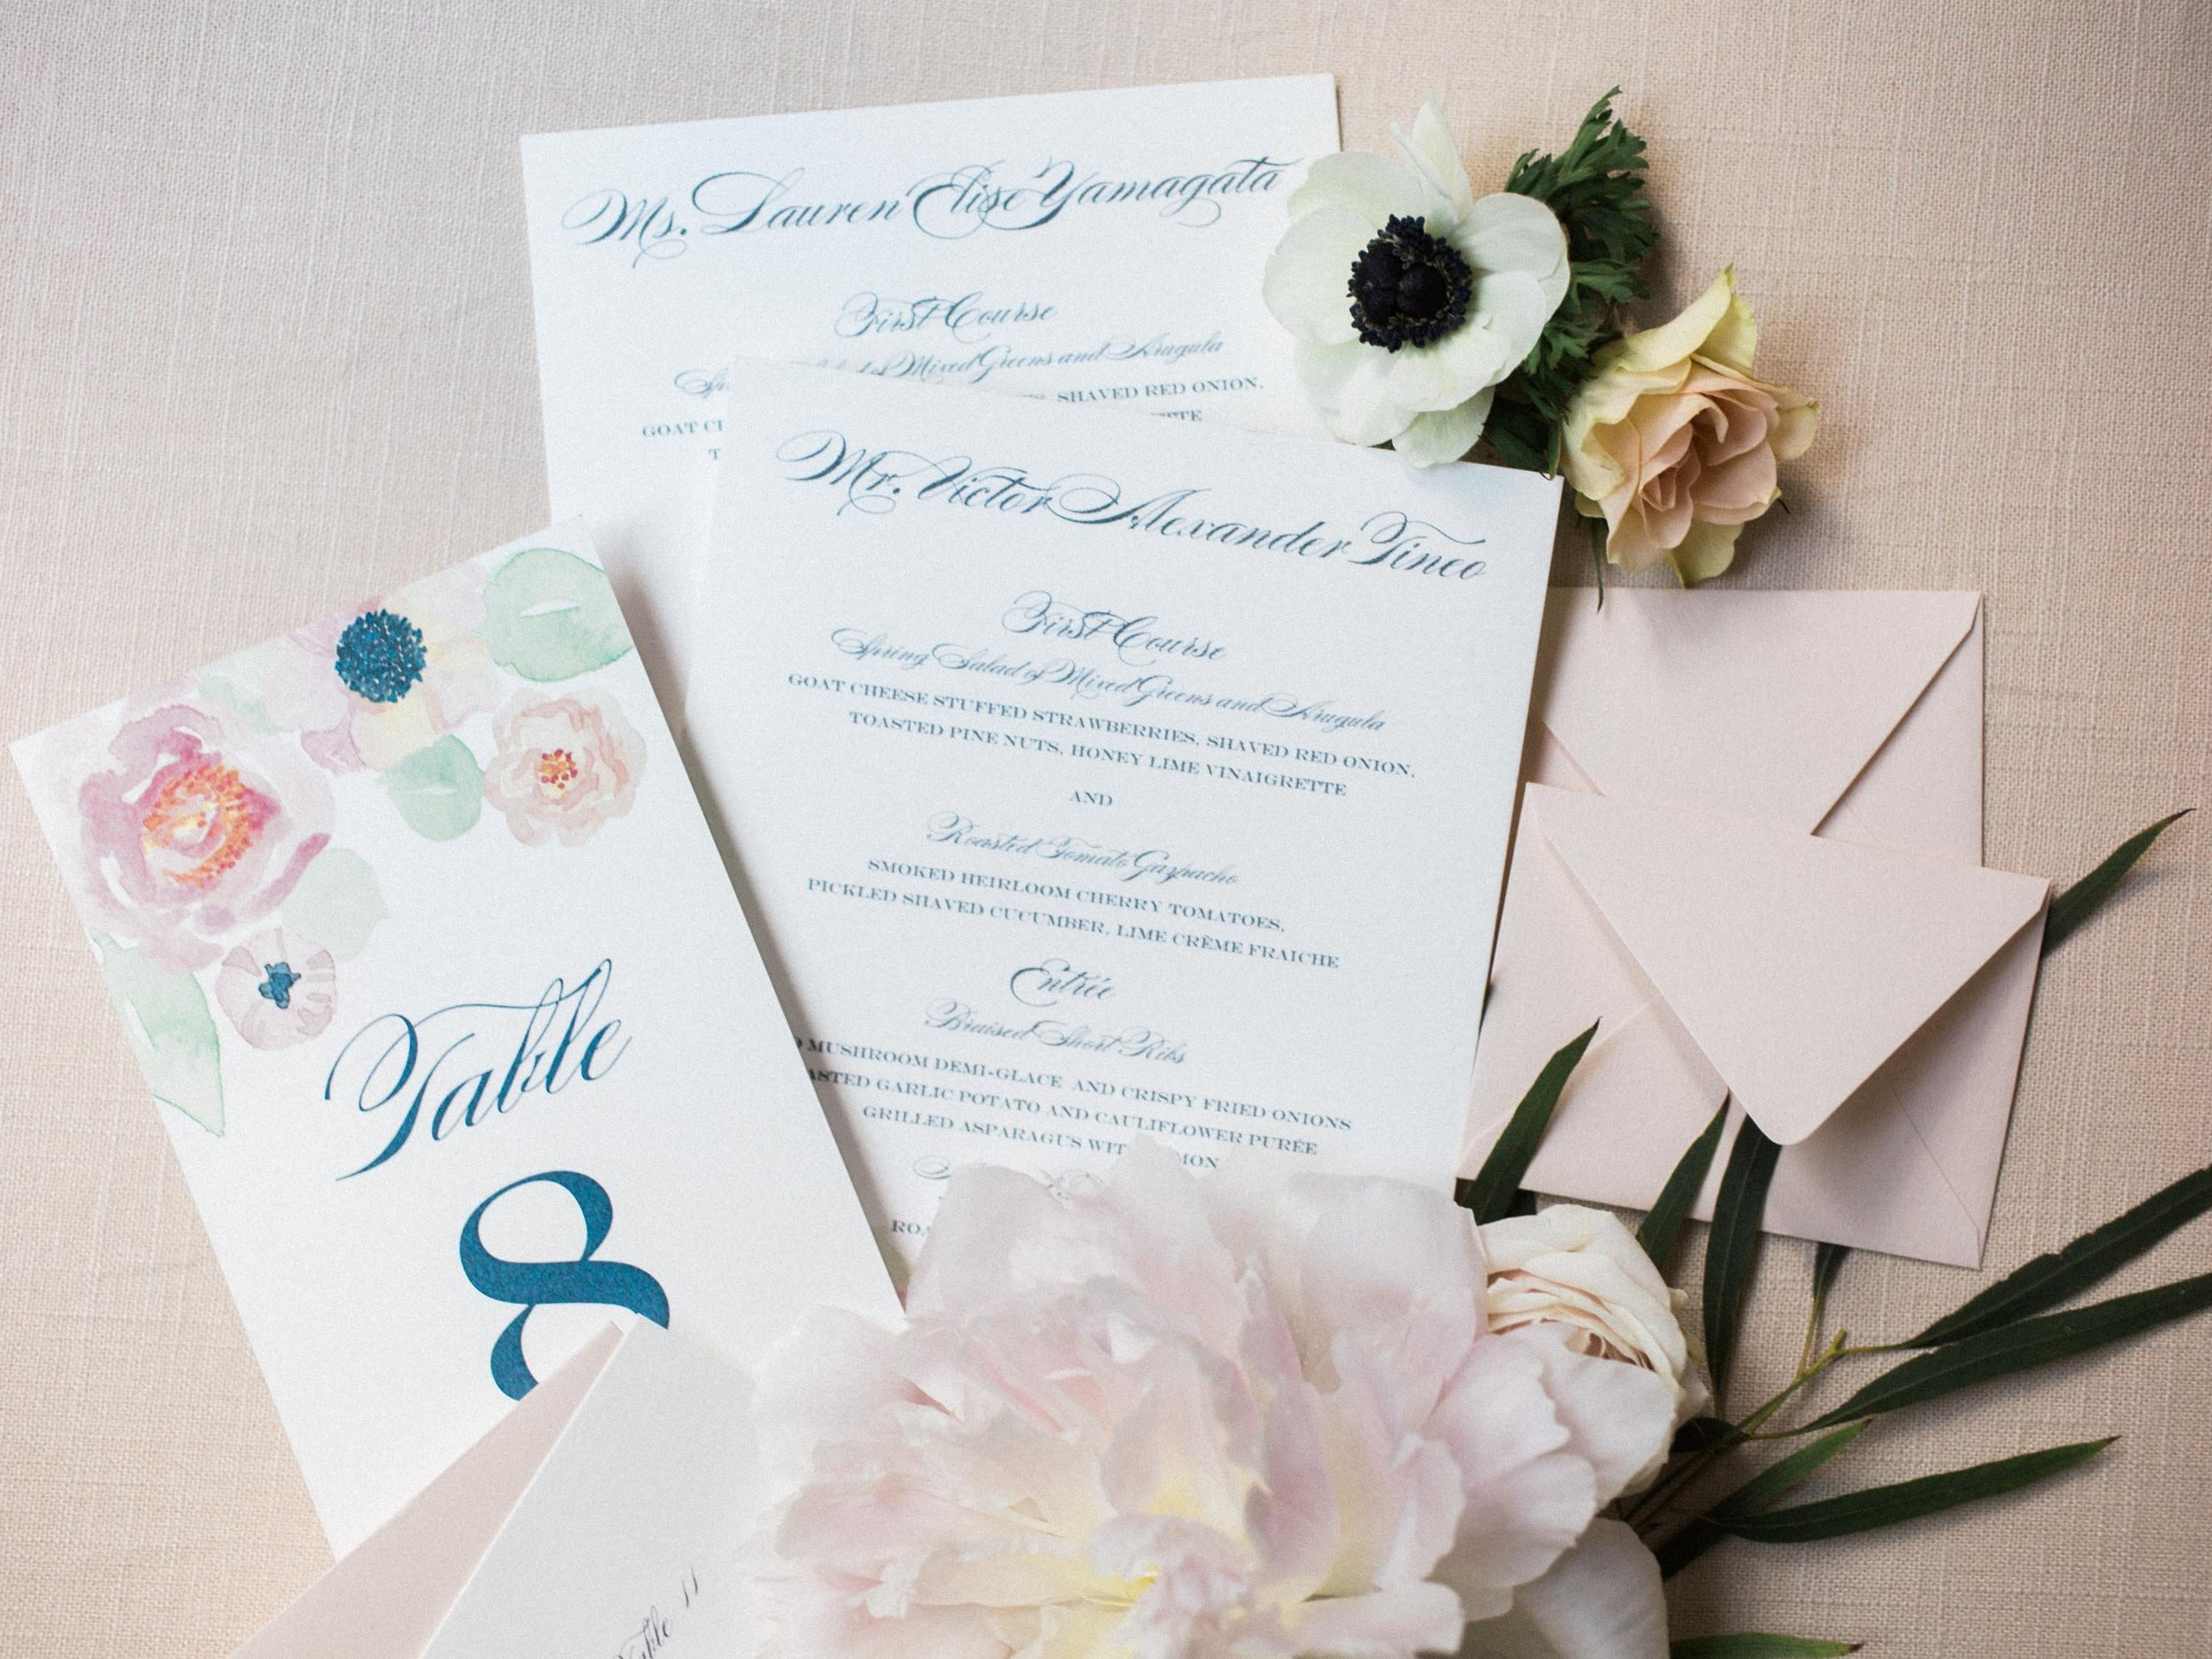 Watercolor Bouquet Suite Day-of Details